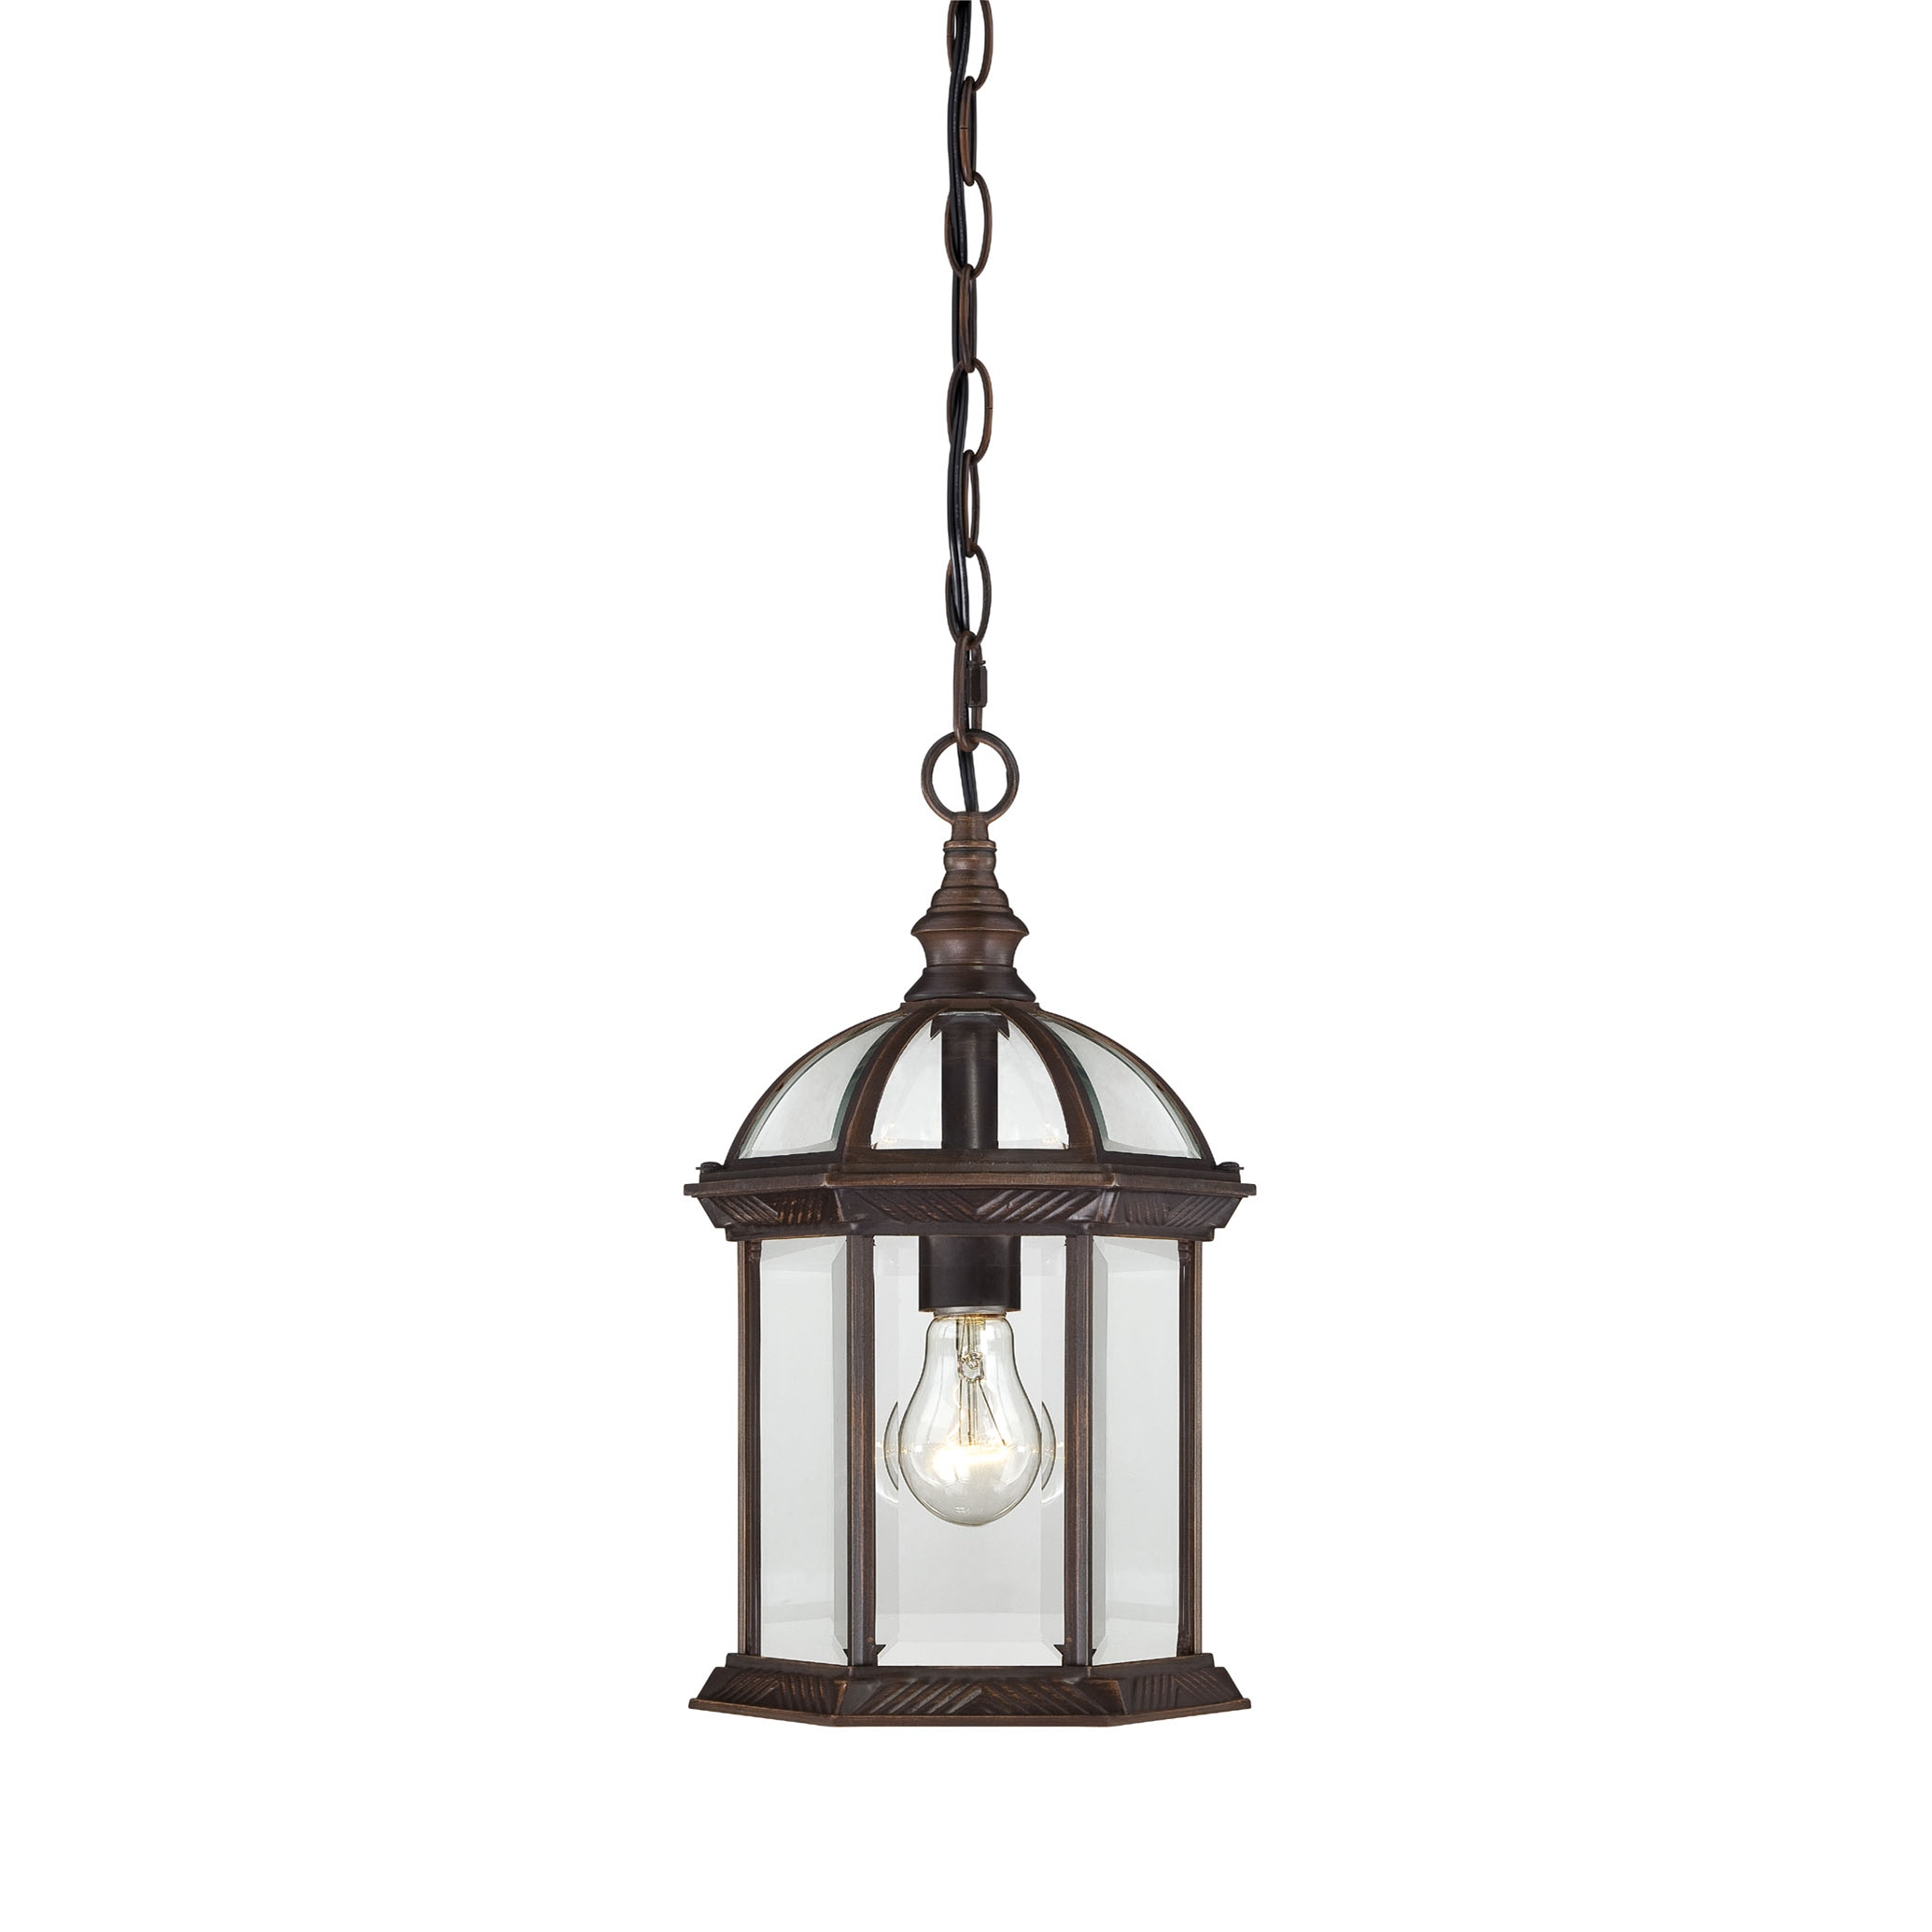 nuvo lighting Boxwood 1 light Rustic Bronze 14 inch Hanging Fixture for home lighting ideas